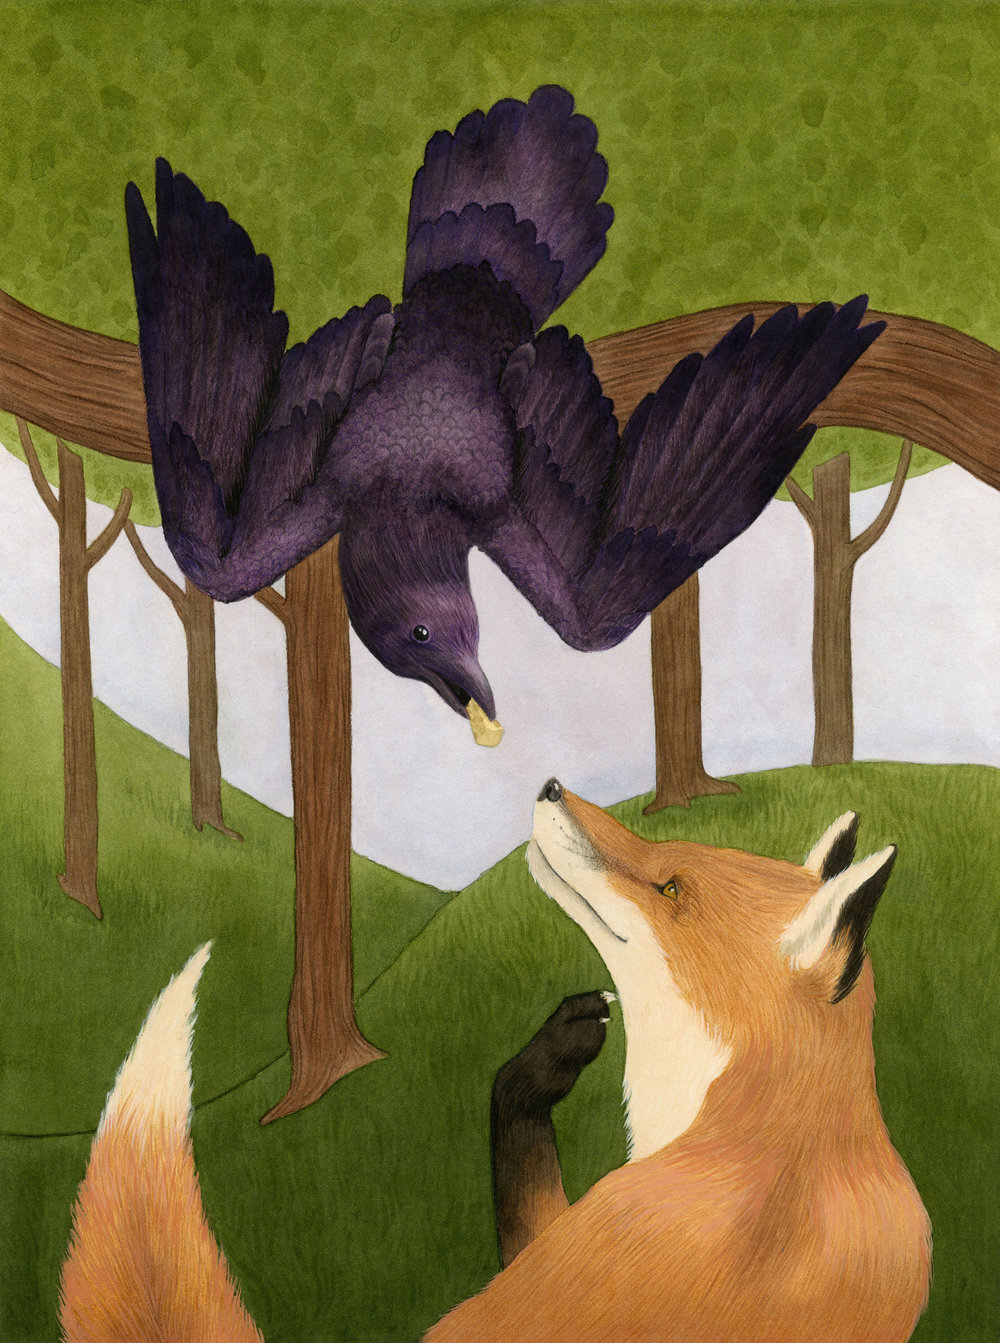 Aesop's Fables: The Fox and The Crow